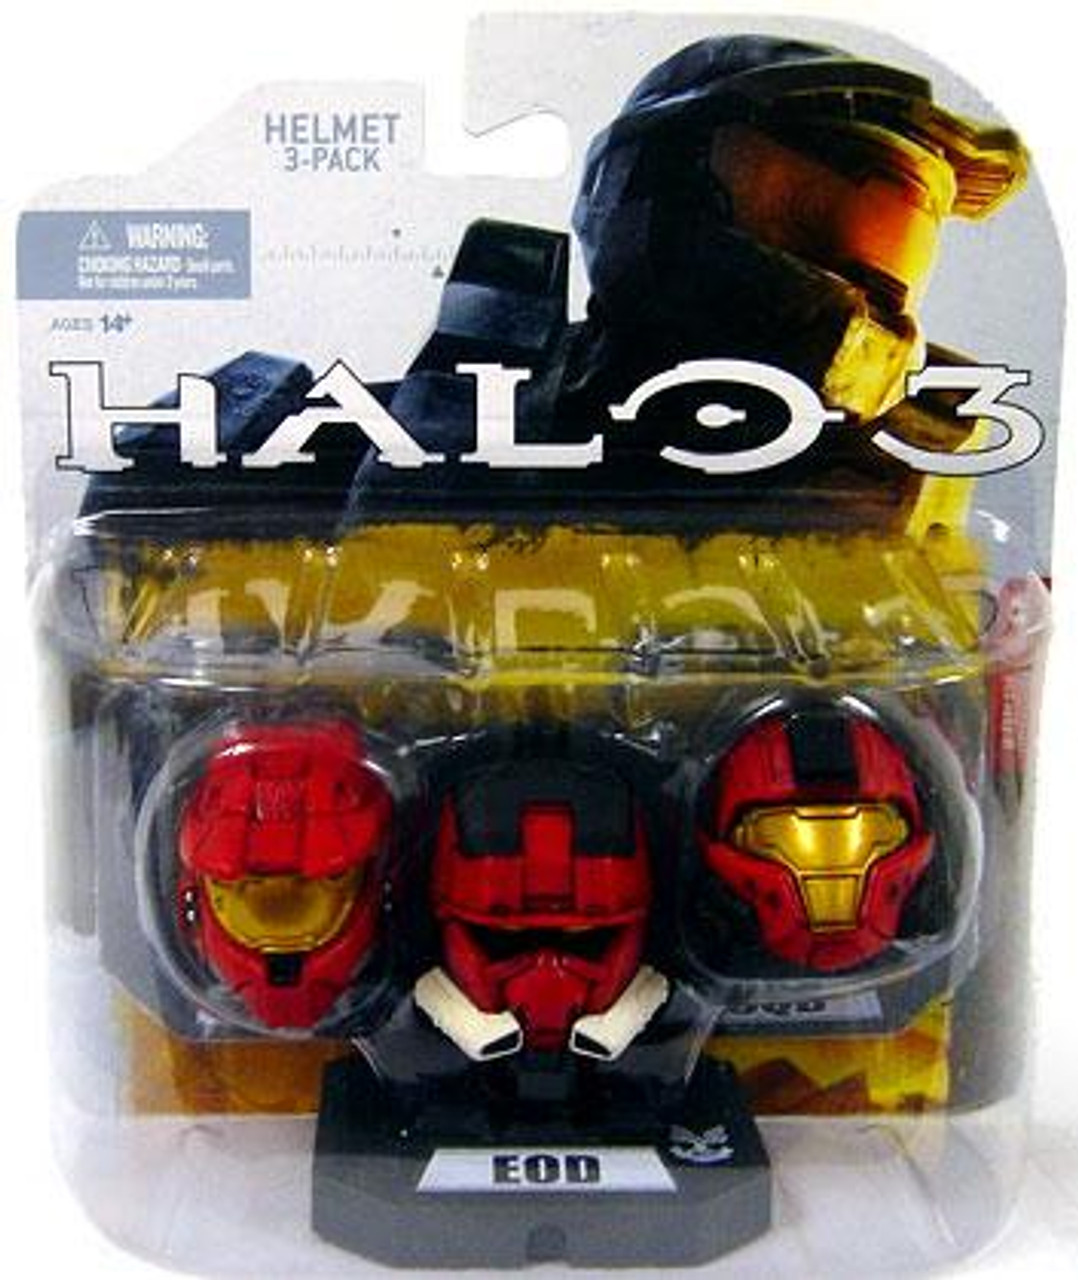 McFarlane Toys Halo Wave 1 Mark VI, EOD & CQB 12-Inch Helmet 3-Pack [Red]